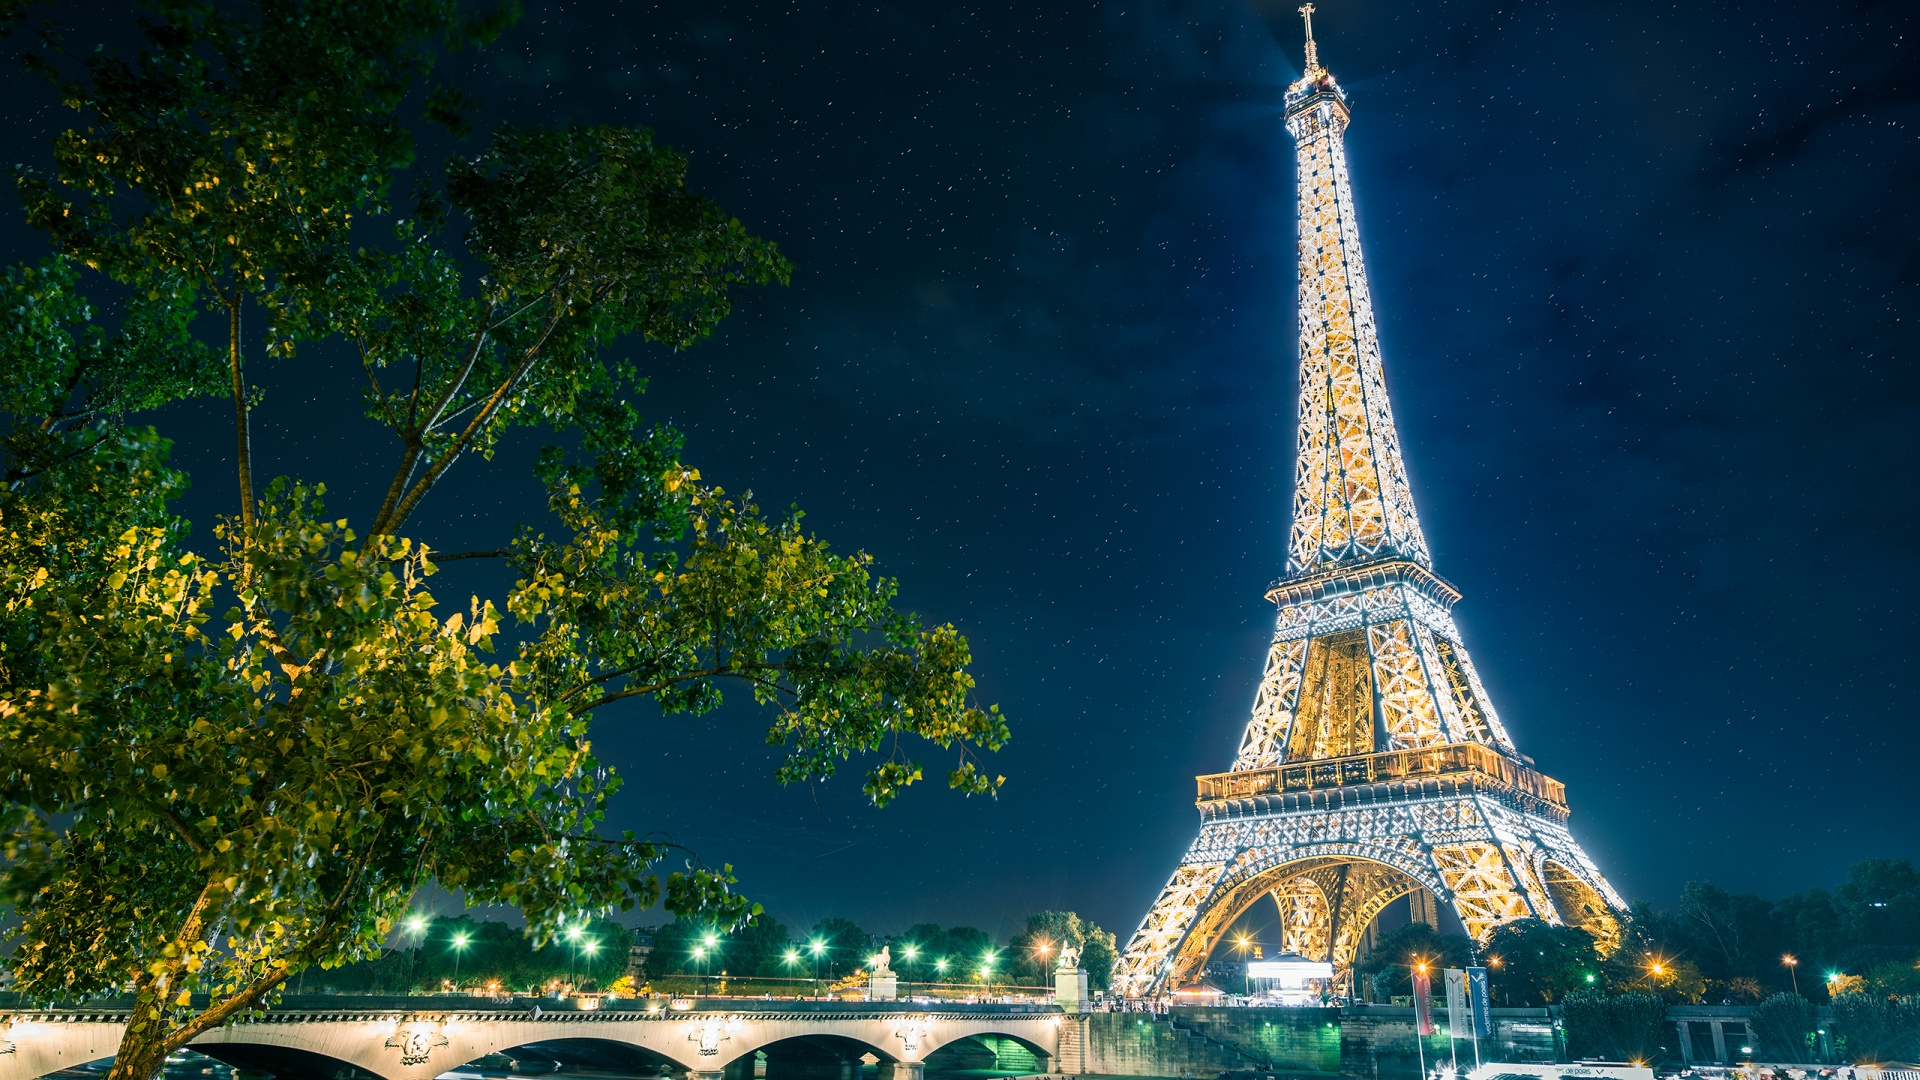 Free Download Paris Eiffel Tower Wallpapers Hd Wallpapers 1920x1080 For Your Desktop Mobile Tablet Explore 46 Cute Eiffel Tower Wallpapers Eiffel Tower Wallpaper Eiffel Tower Hd Wallpapers Cute Paris Wallpaper